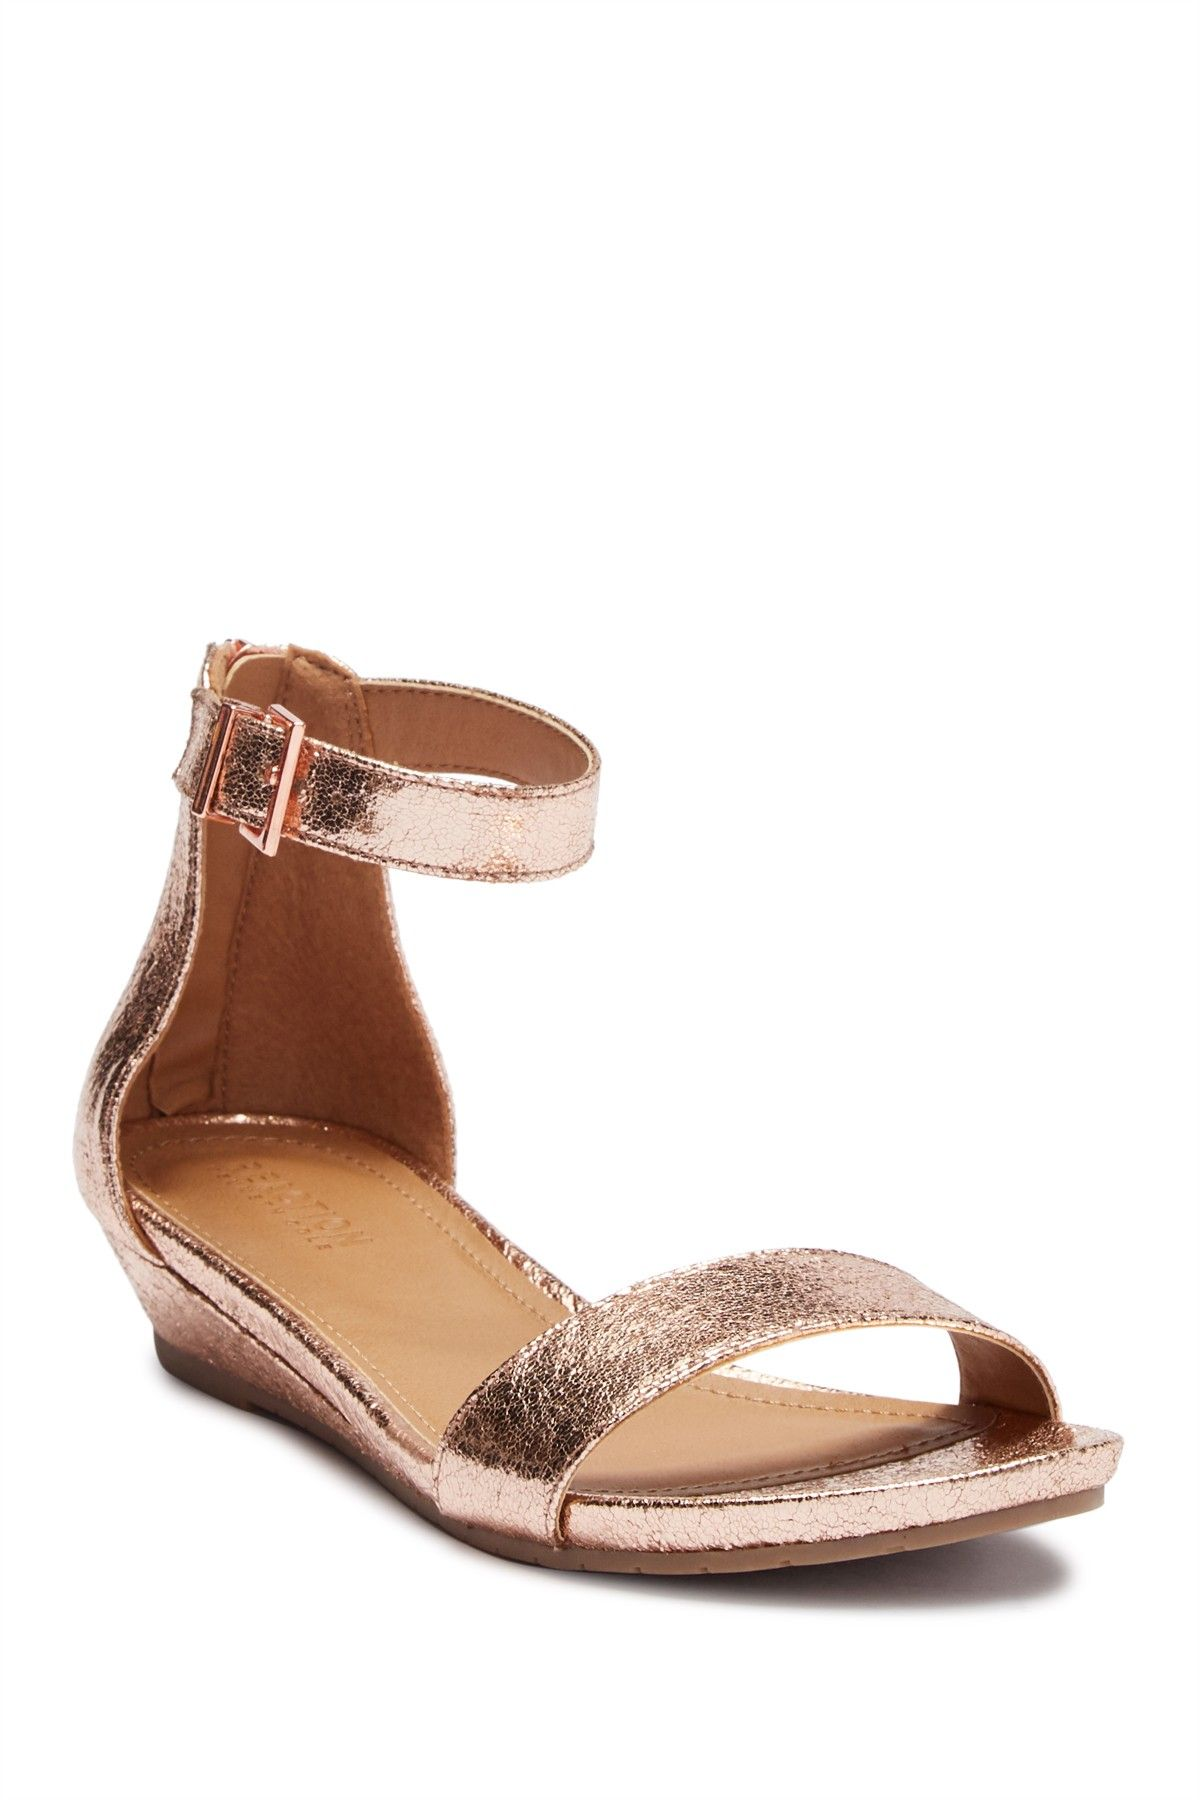 1999cae67e990d Kenneth Cole Reaction - Great Start Wedge Sandal is now 49% off. Free  Shipping on orders over  100.